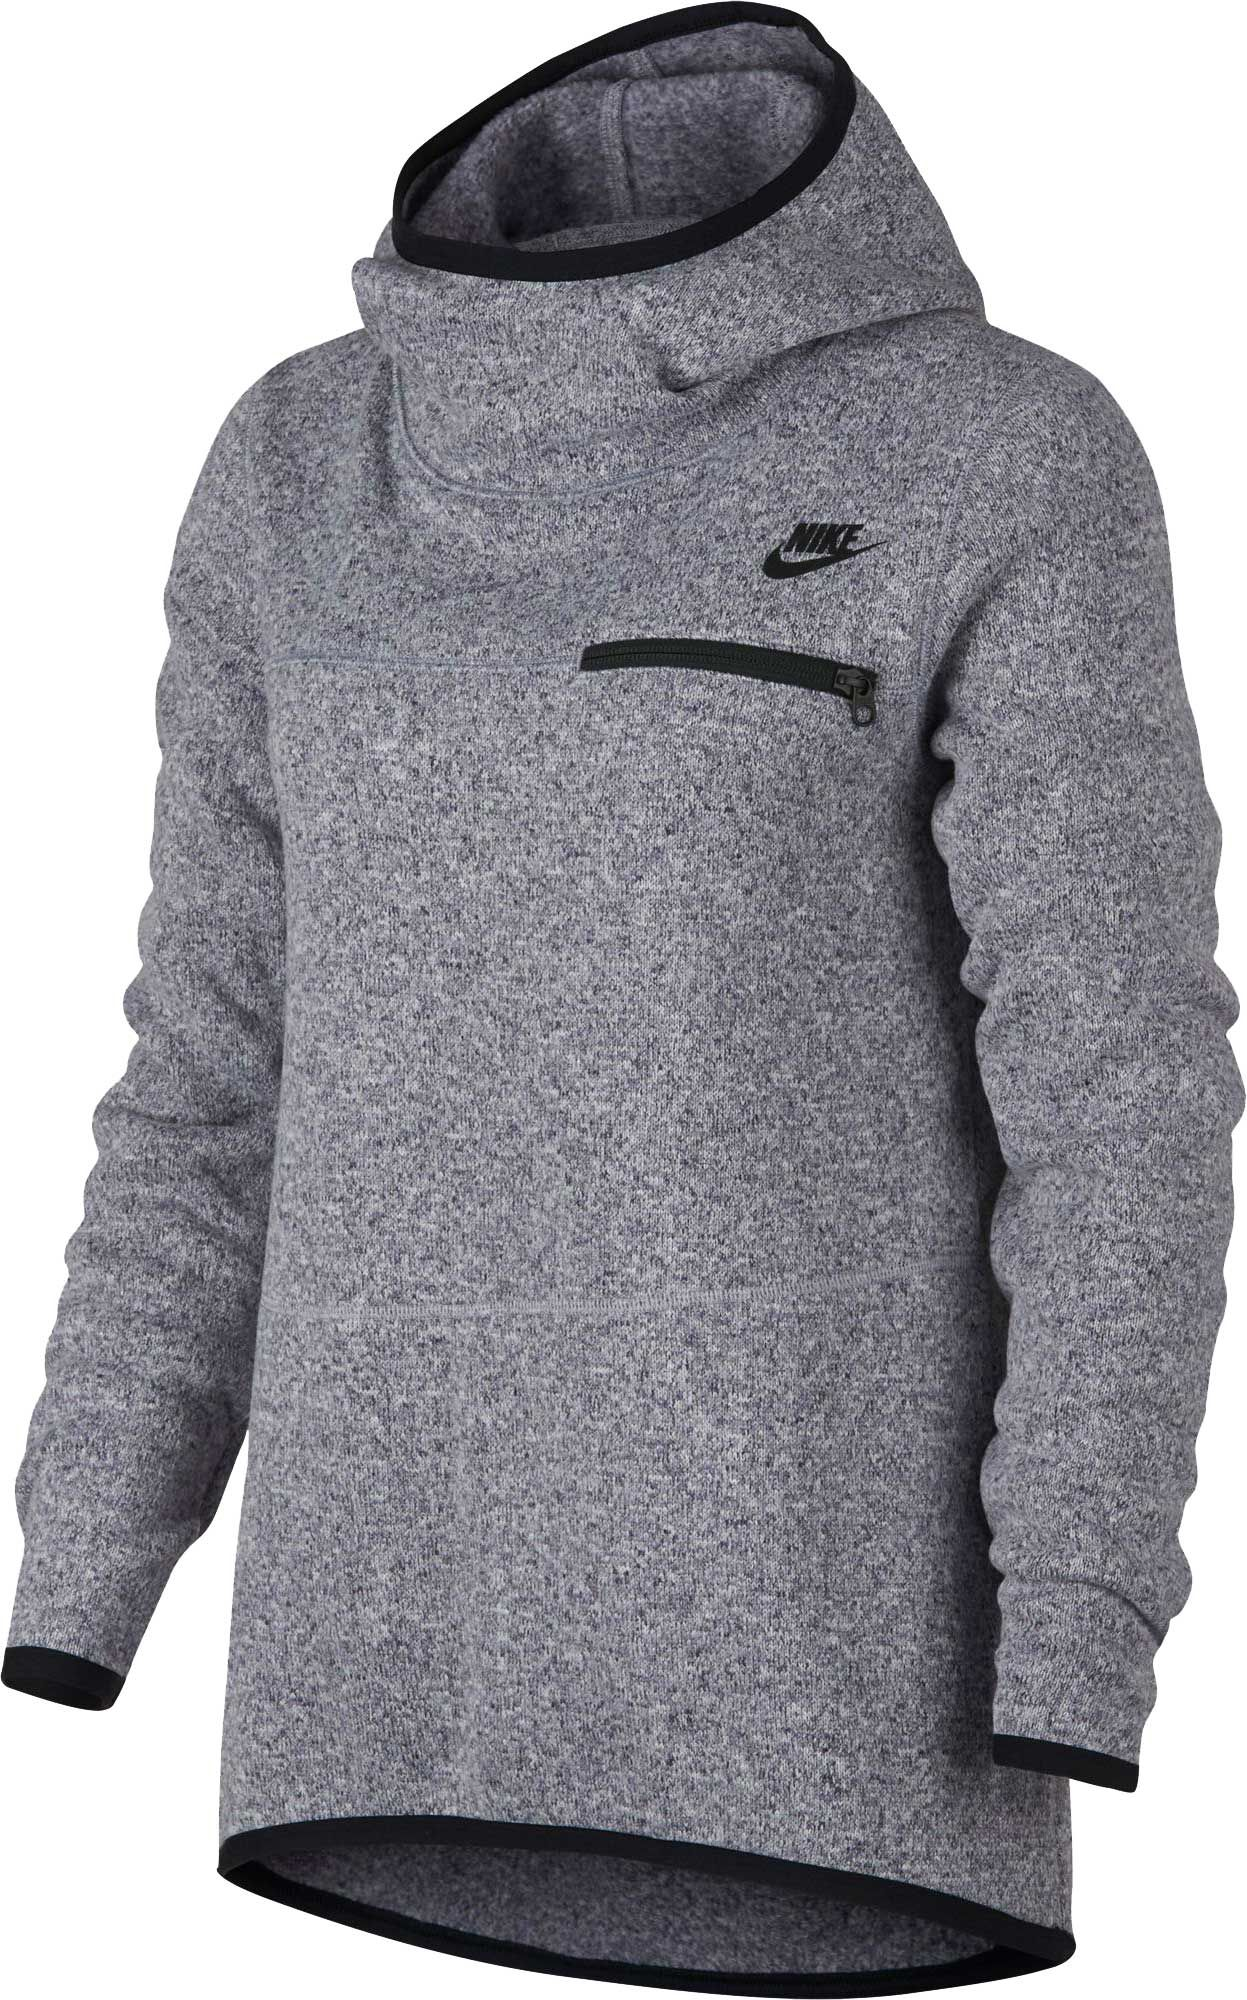 Women's Hoodies & Sweatshirts: Nike & More | Price Match Guarantee ...